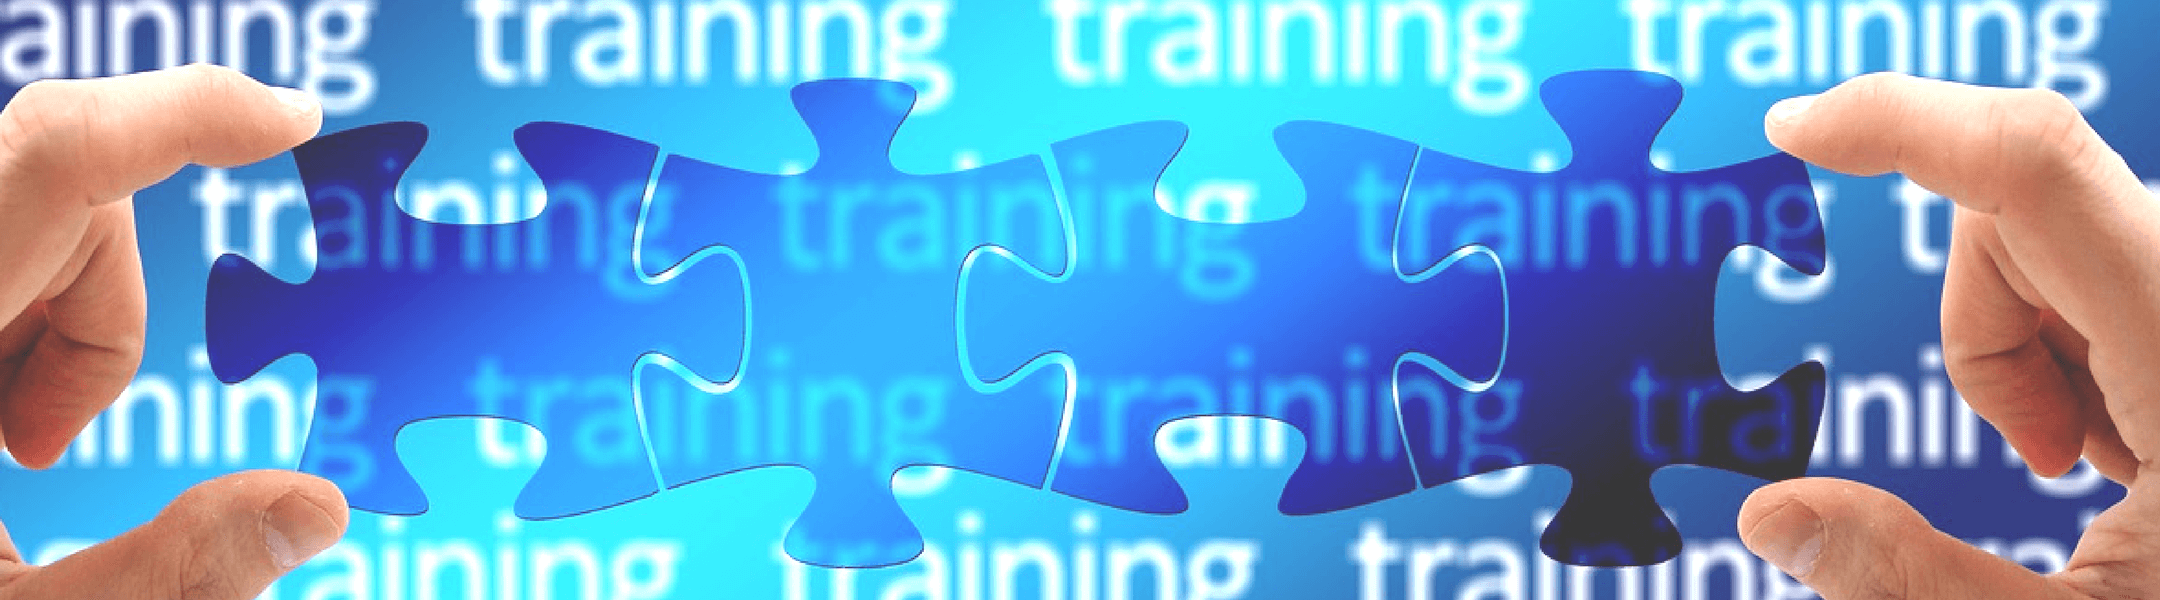 Training from the Digital Coach